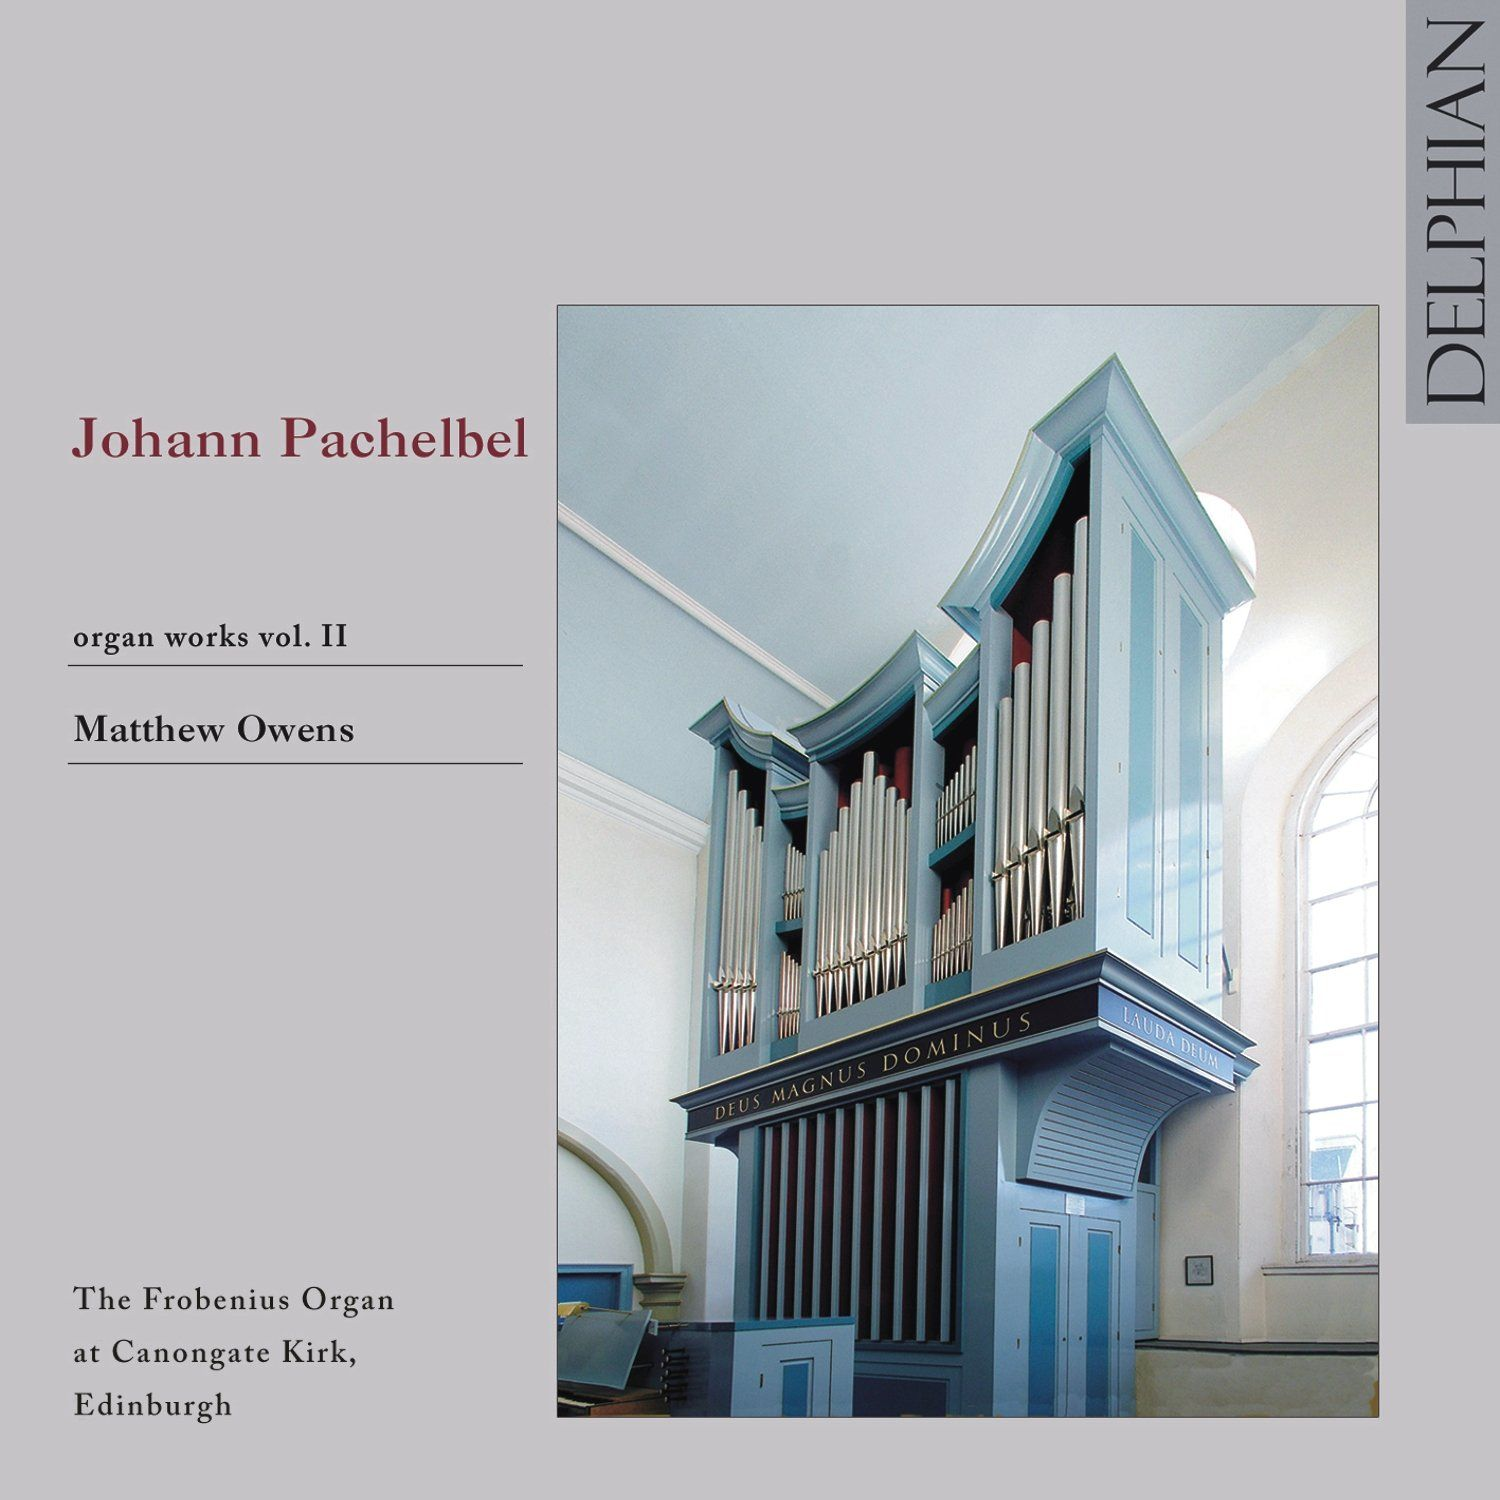 Pachelbel: Organ Works Vol II CD Delphian Records